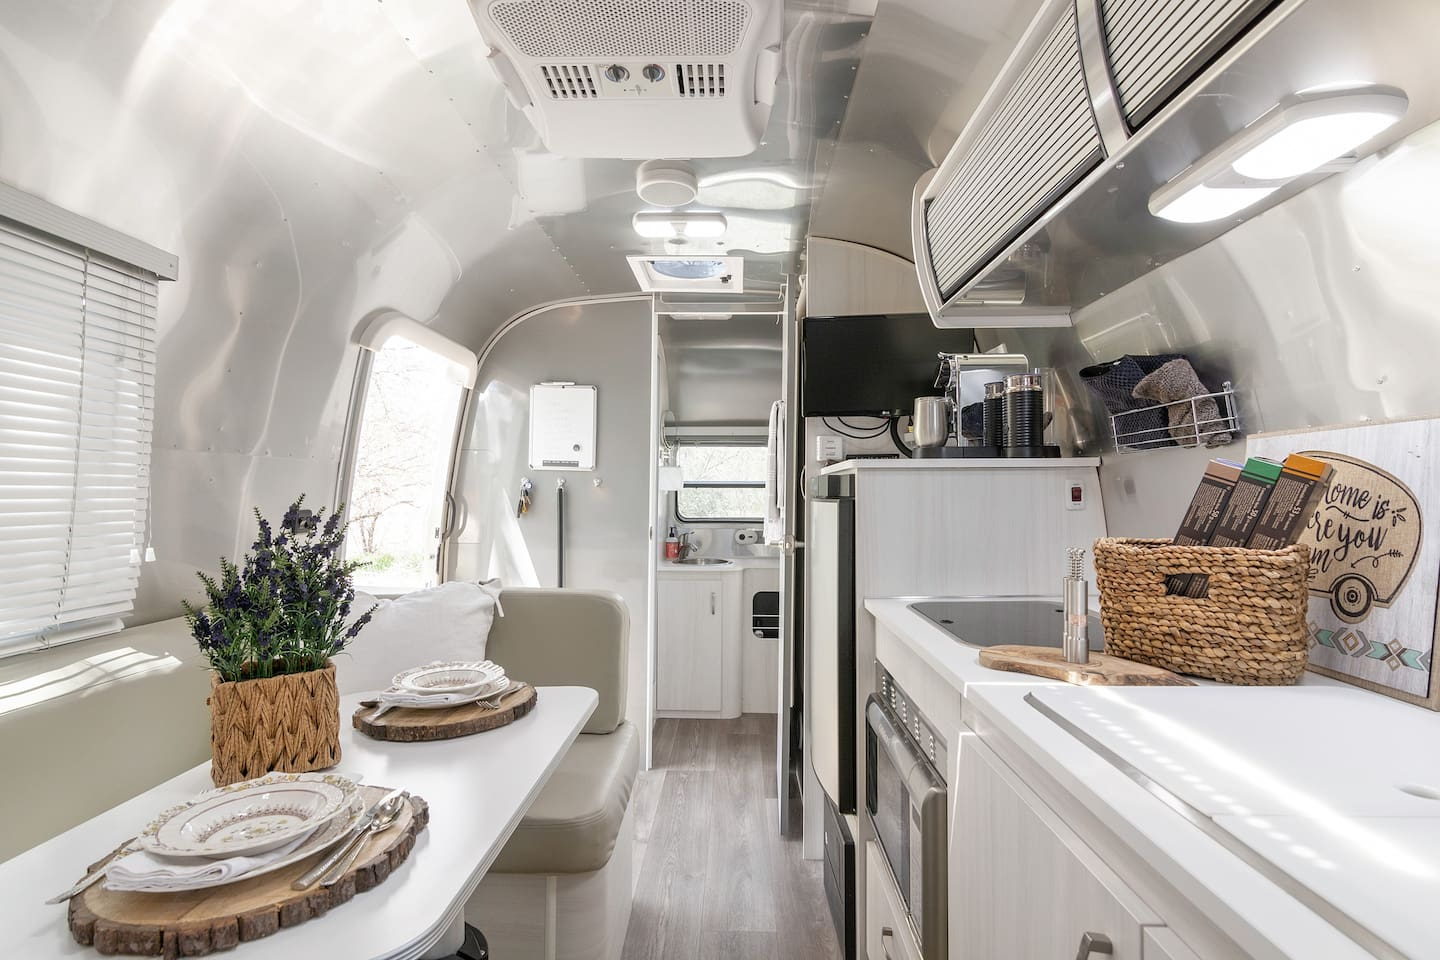 2019 Airstream- pristine and charming in a rural setting across from ancient petroglyphs- hiking and breathtaking views just steps from your door!